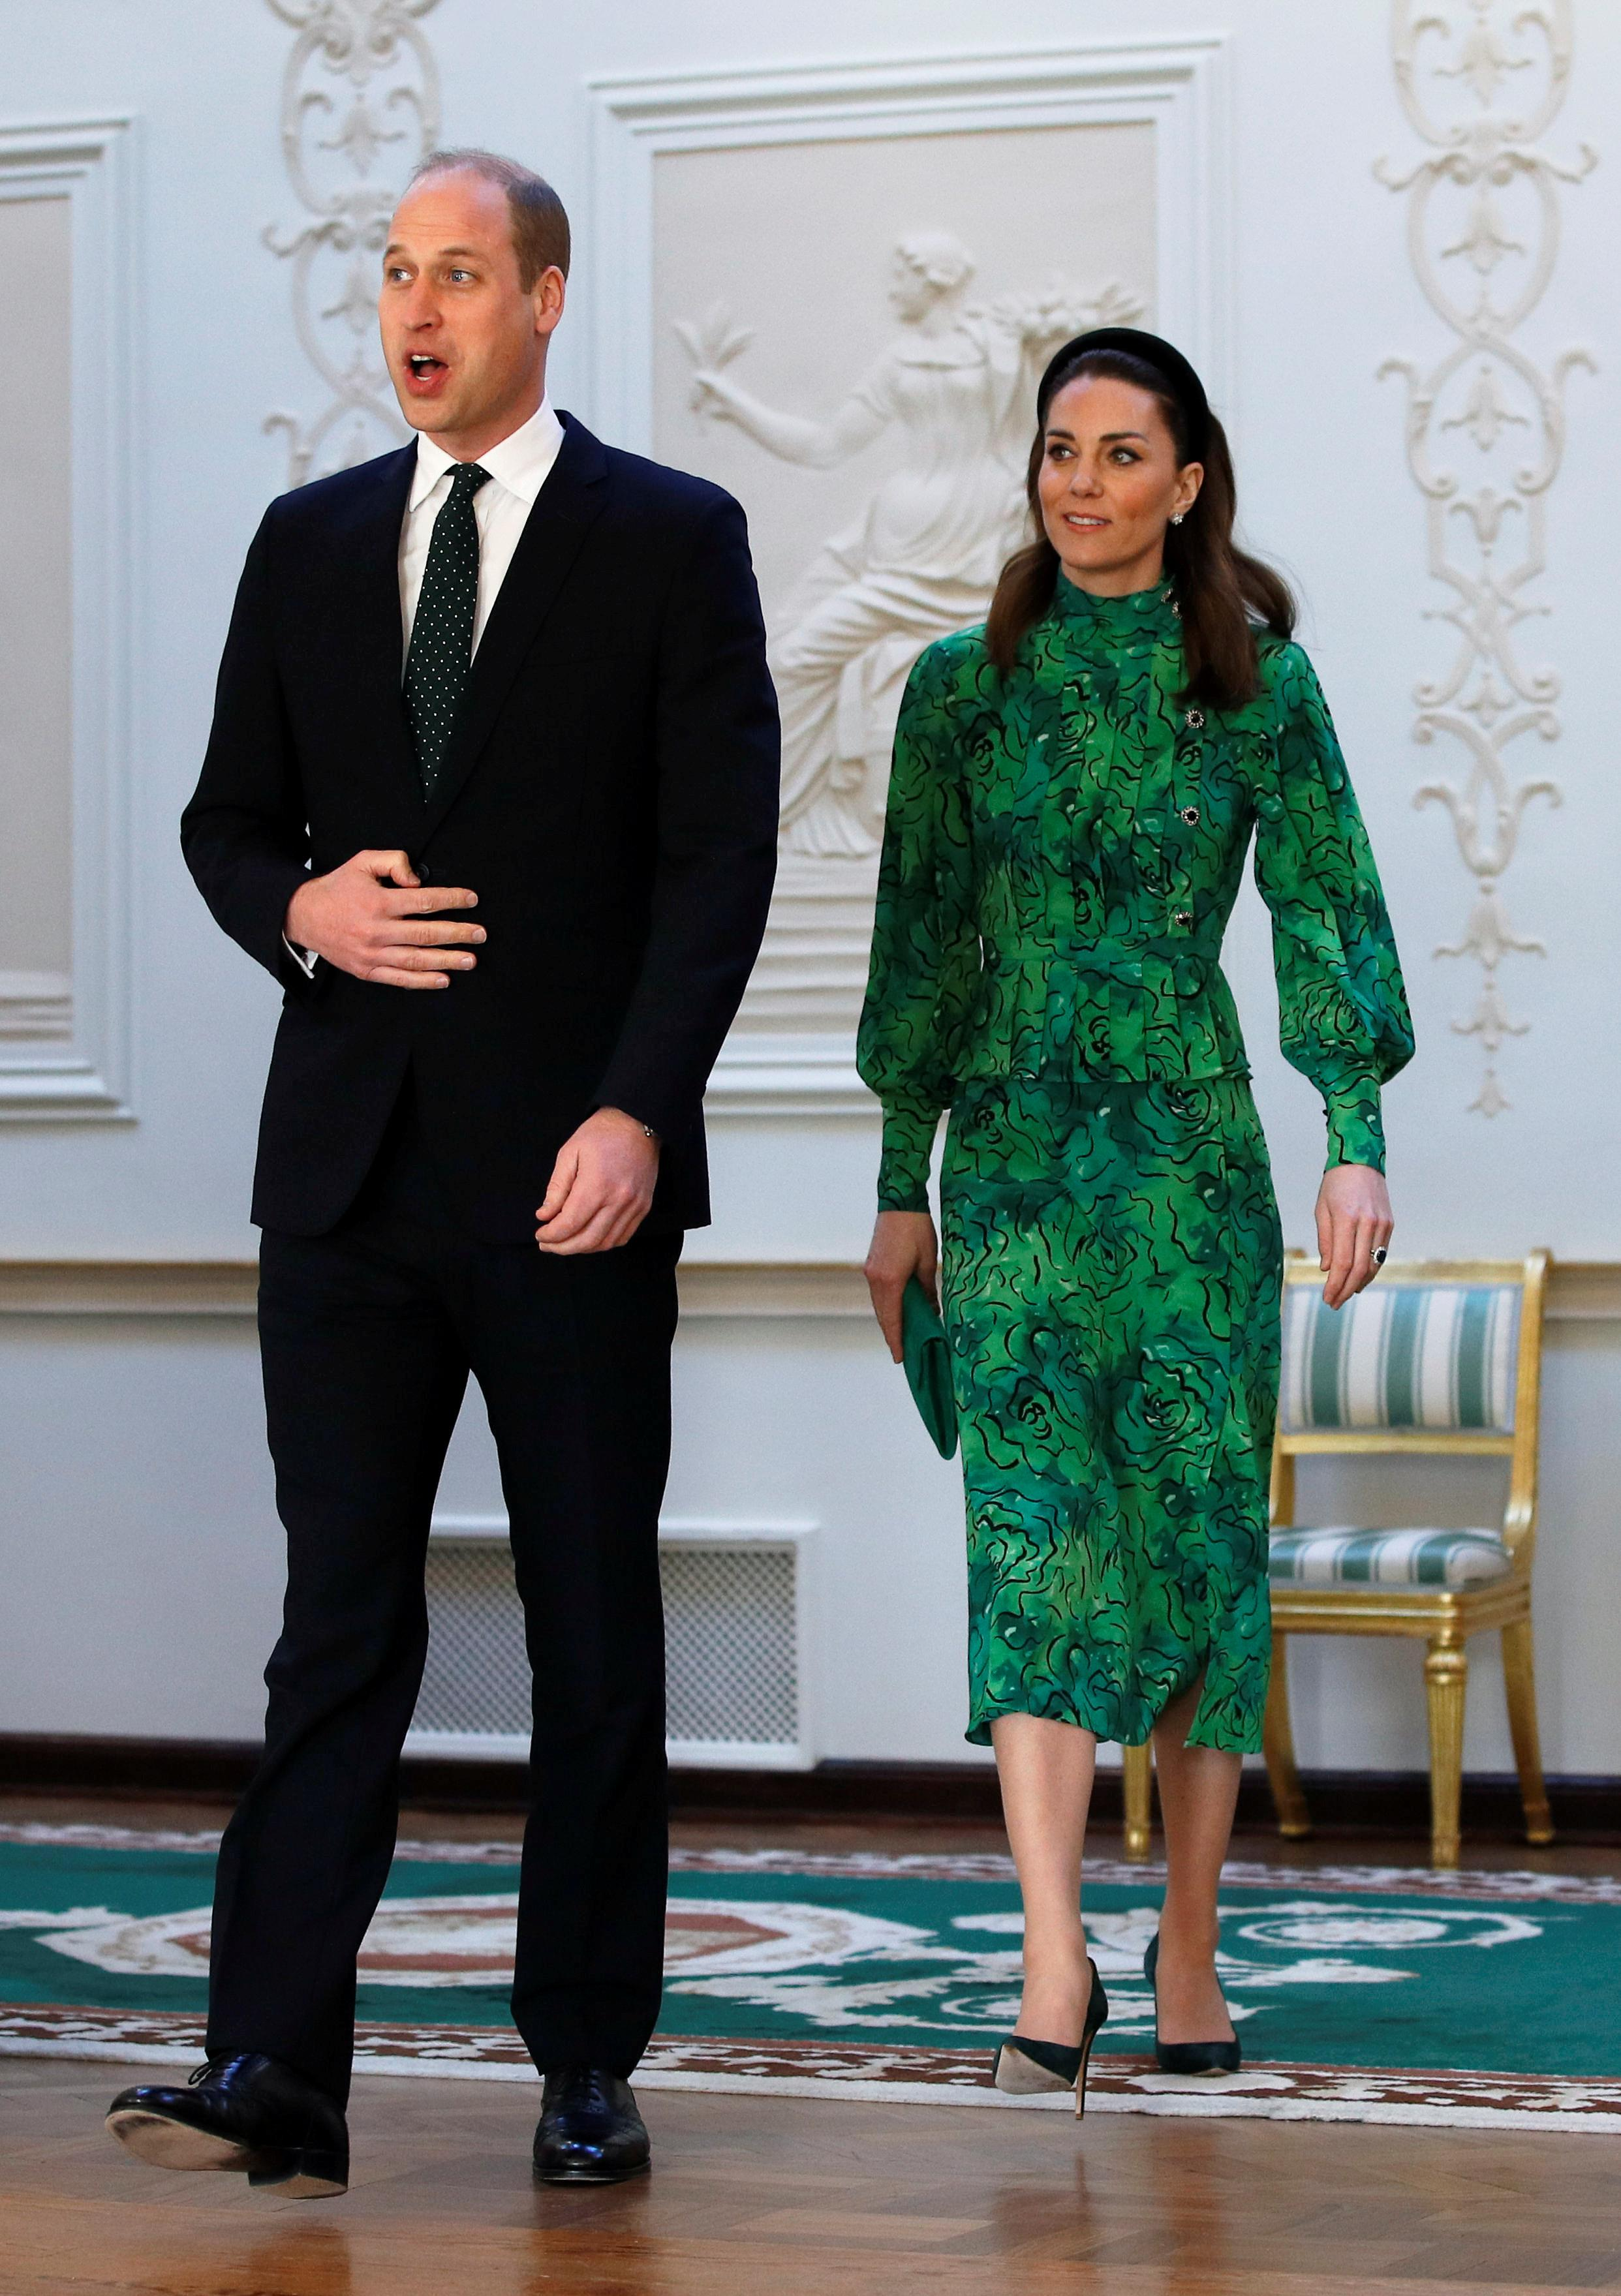 The Duke and Duchess of Cambridge arrive to meet with Ireland's President Michael D. Higgins and his wife Sabina Coyne at the official presidential residence Aras an Uachtarain. (Getty Images)